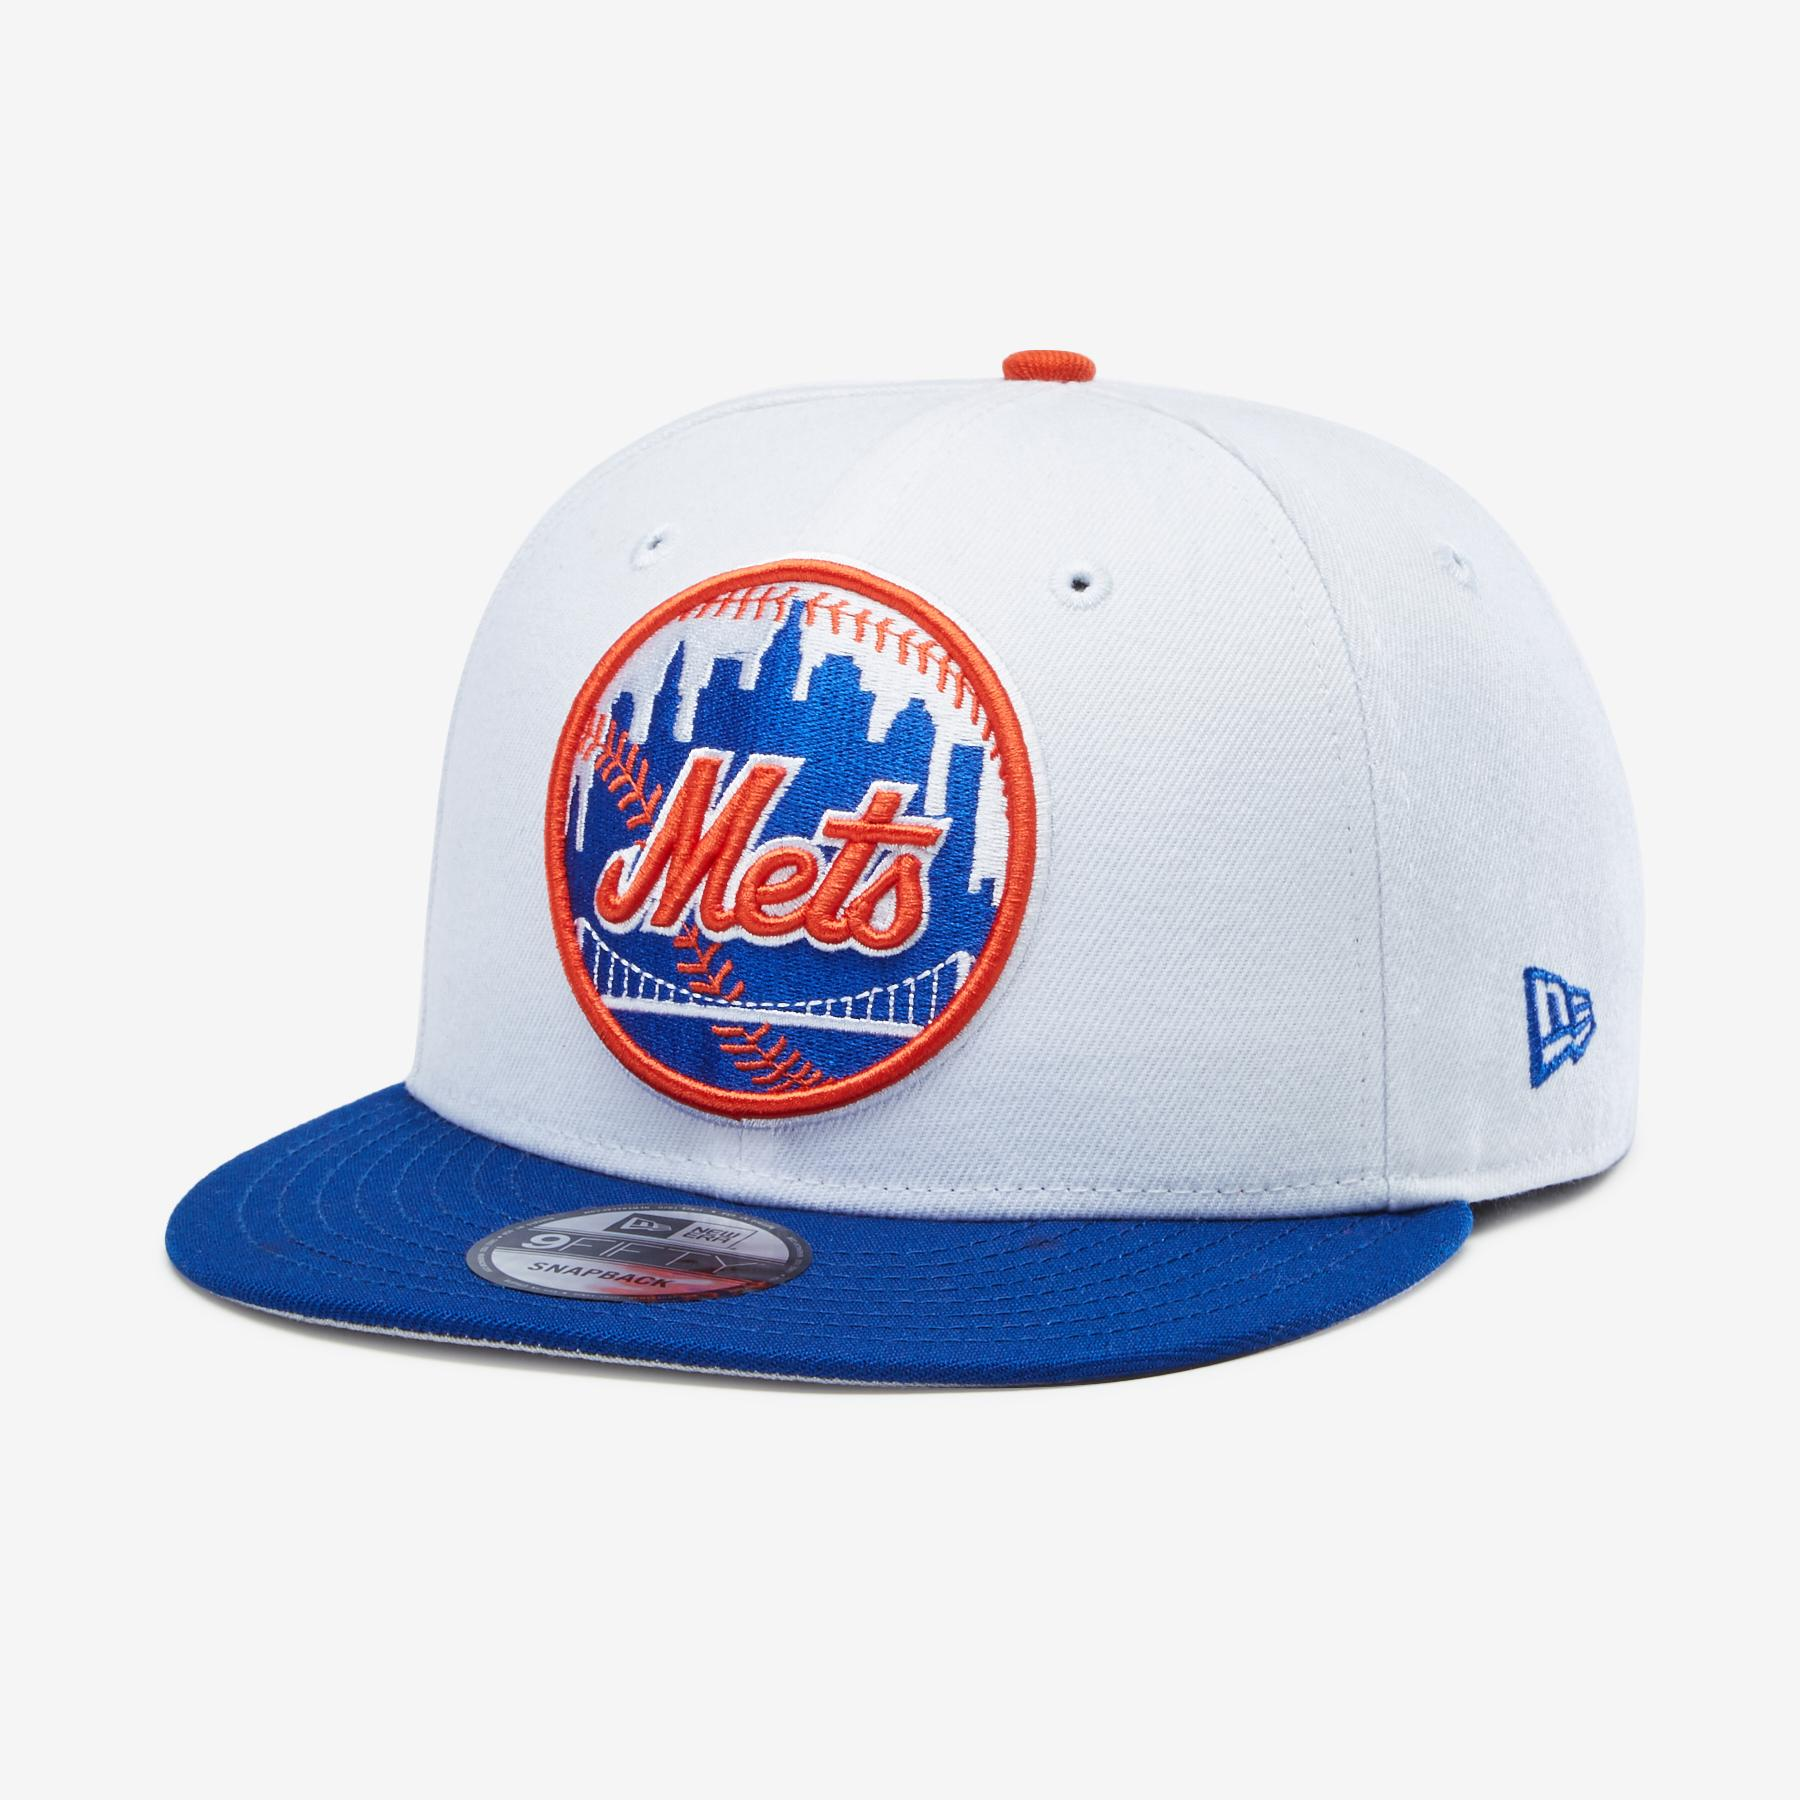 Mets 9fifty Snapback